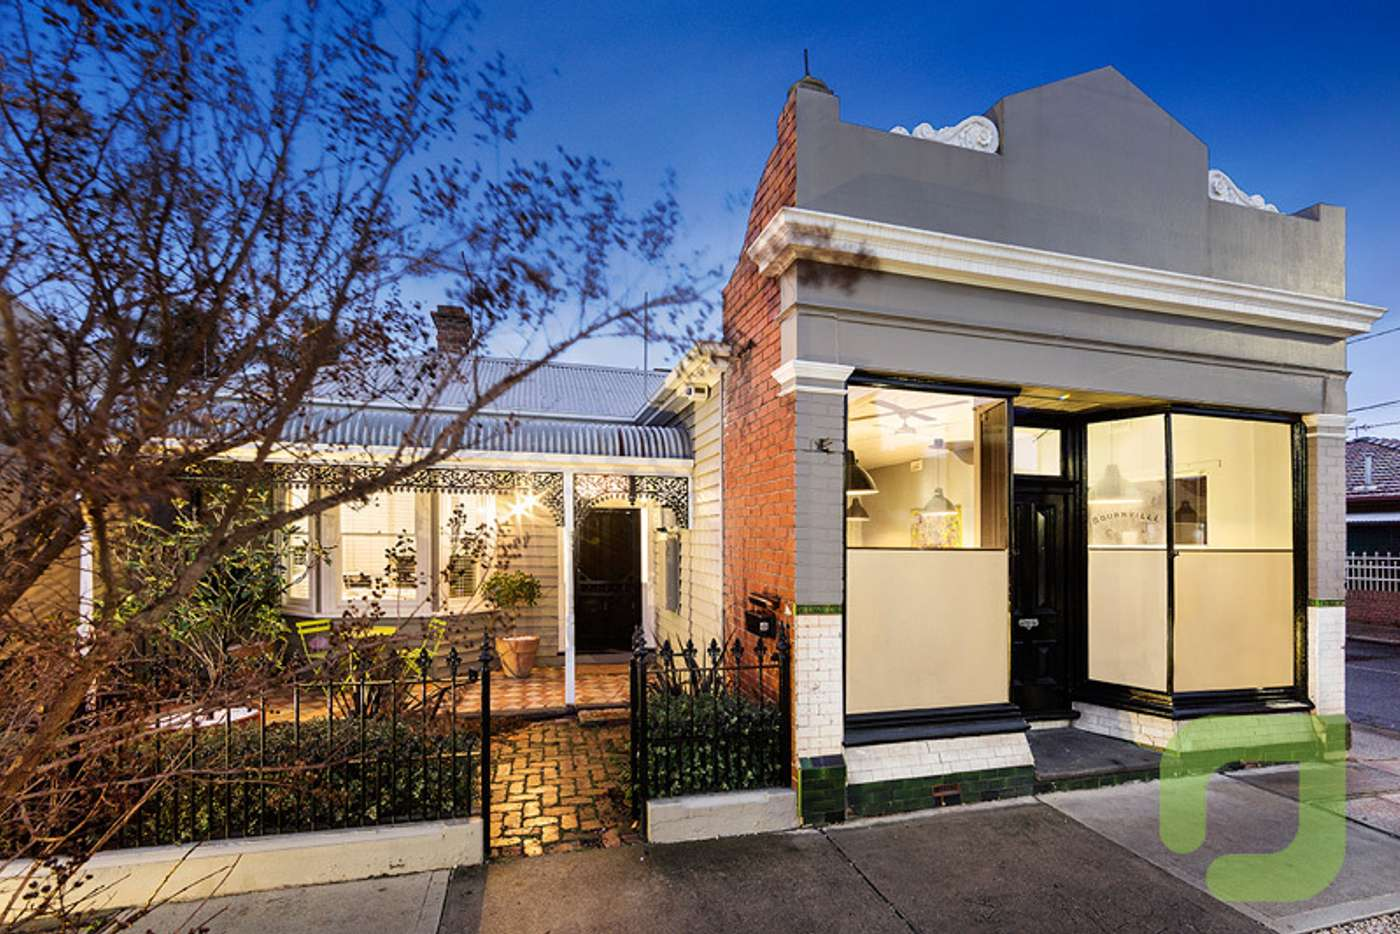 Main view of Homely house listing, 142 Stephen Street, Yarraville VIC 3013